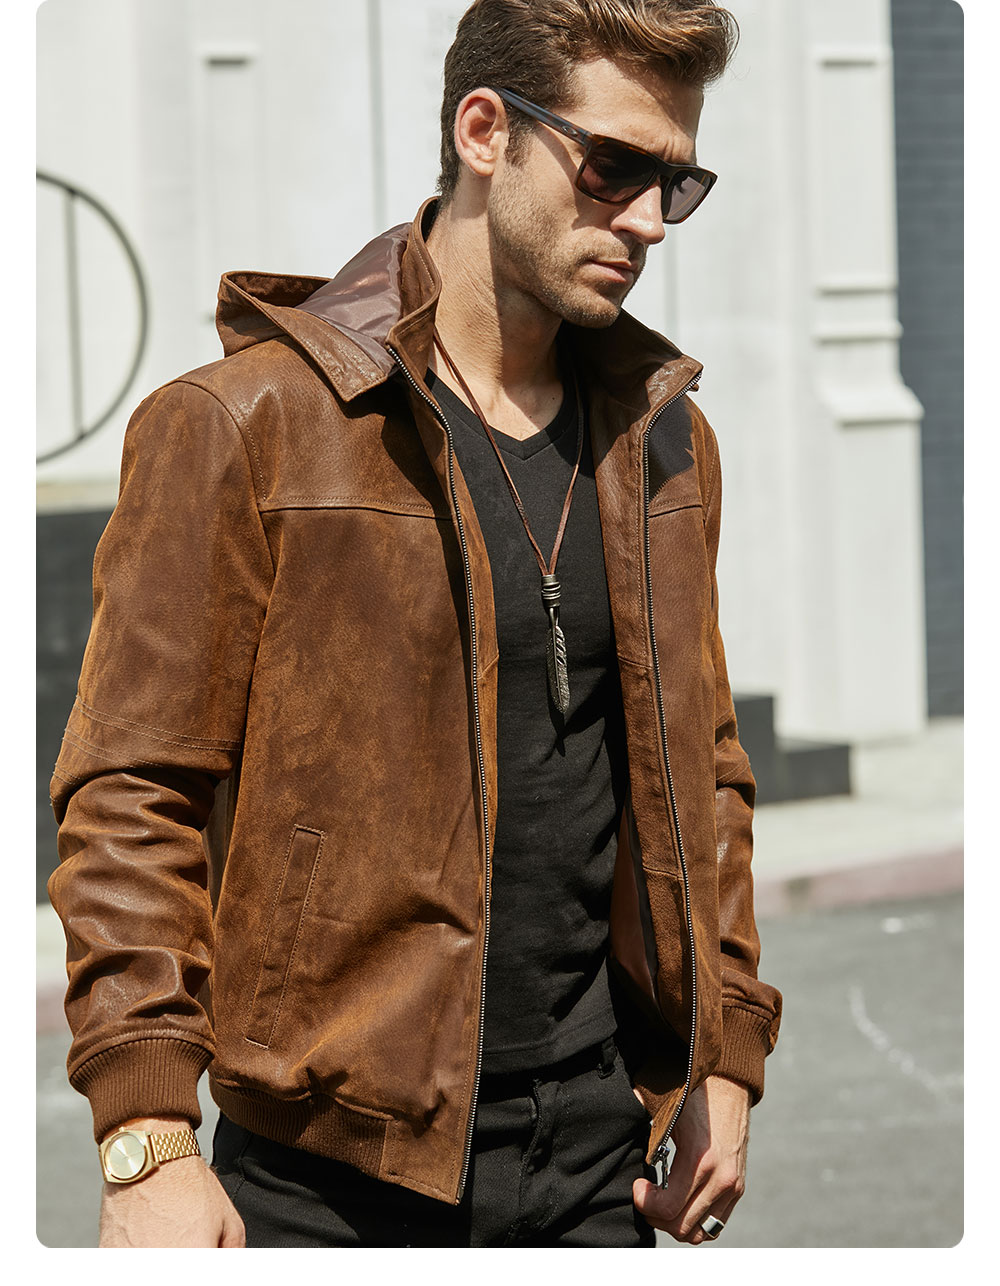 H3ea6bf319452428da7f060def214b53fD New Men's Winter Jacket Made Of Genuine Pigskin Leather With A Hood, Pigskin Motorcycle Jacket, Natural Leather Jacket